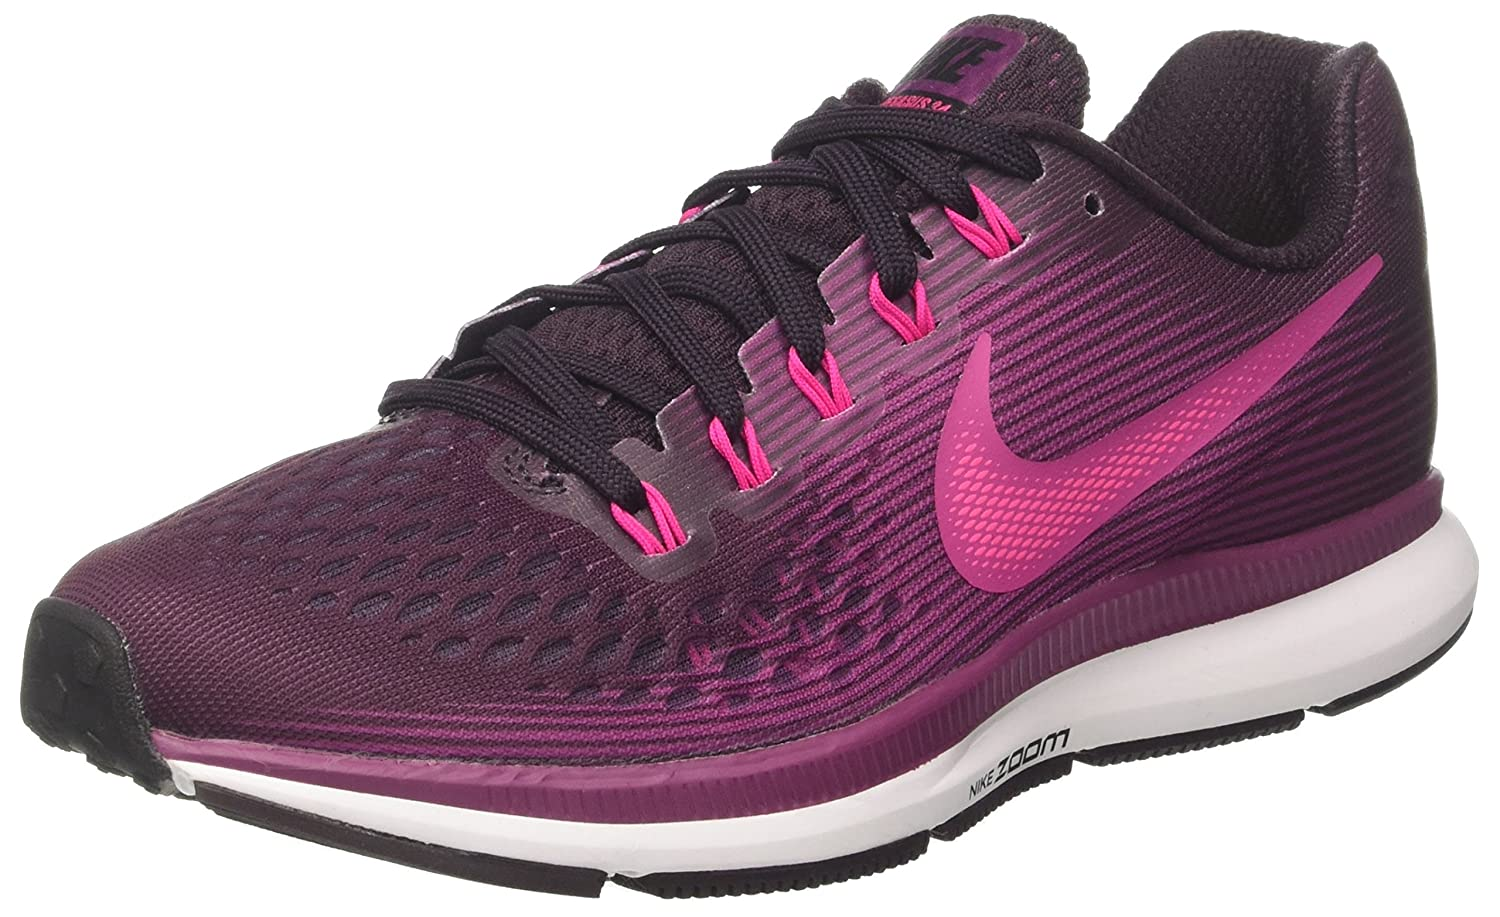 NIKE Women's Air Zoom Pegasus 34 Running Shoe B06WW77JLL 10 B(M) US|Port Wine/Deadly Pink/Tea Berry/Black